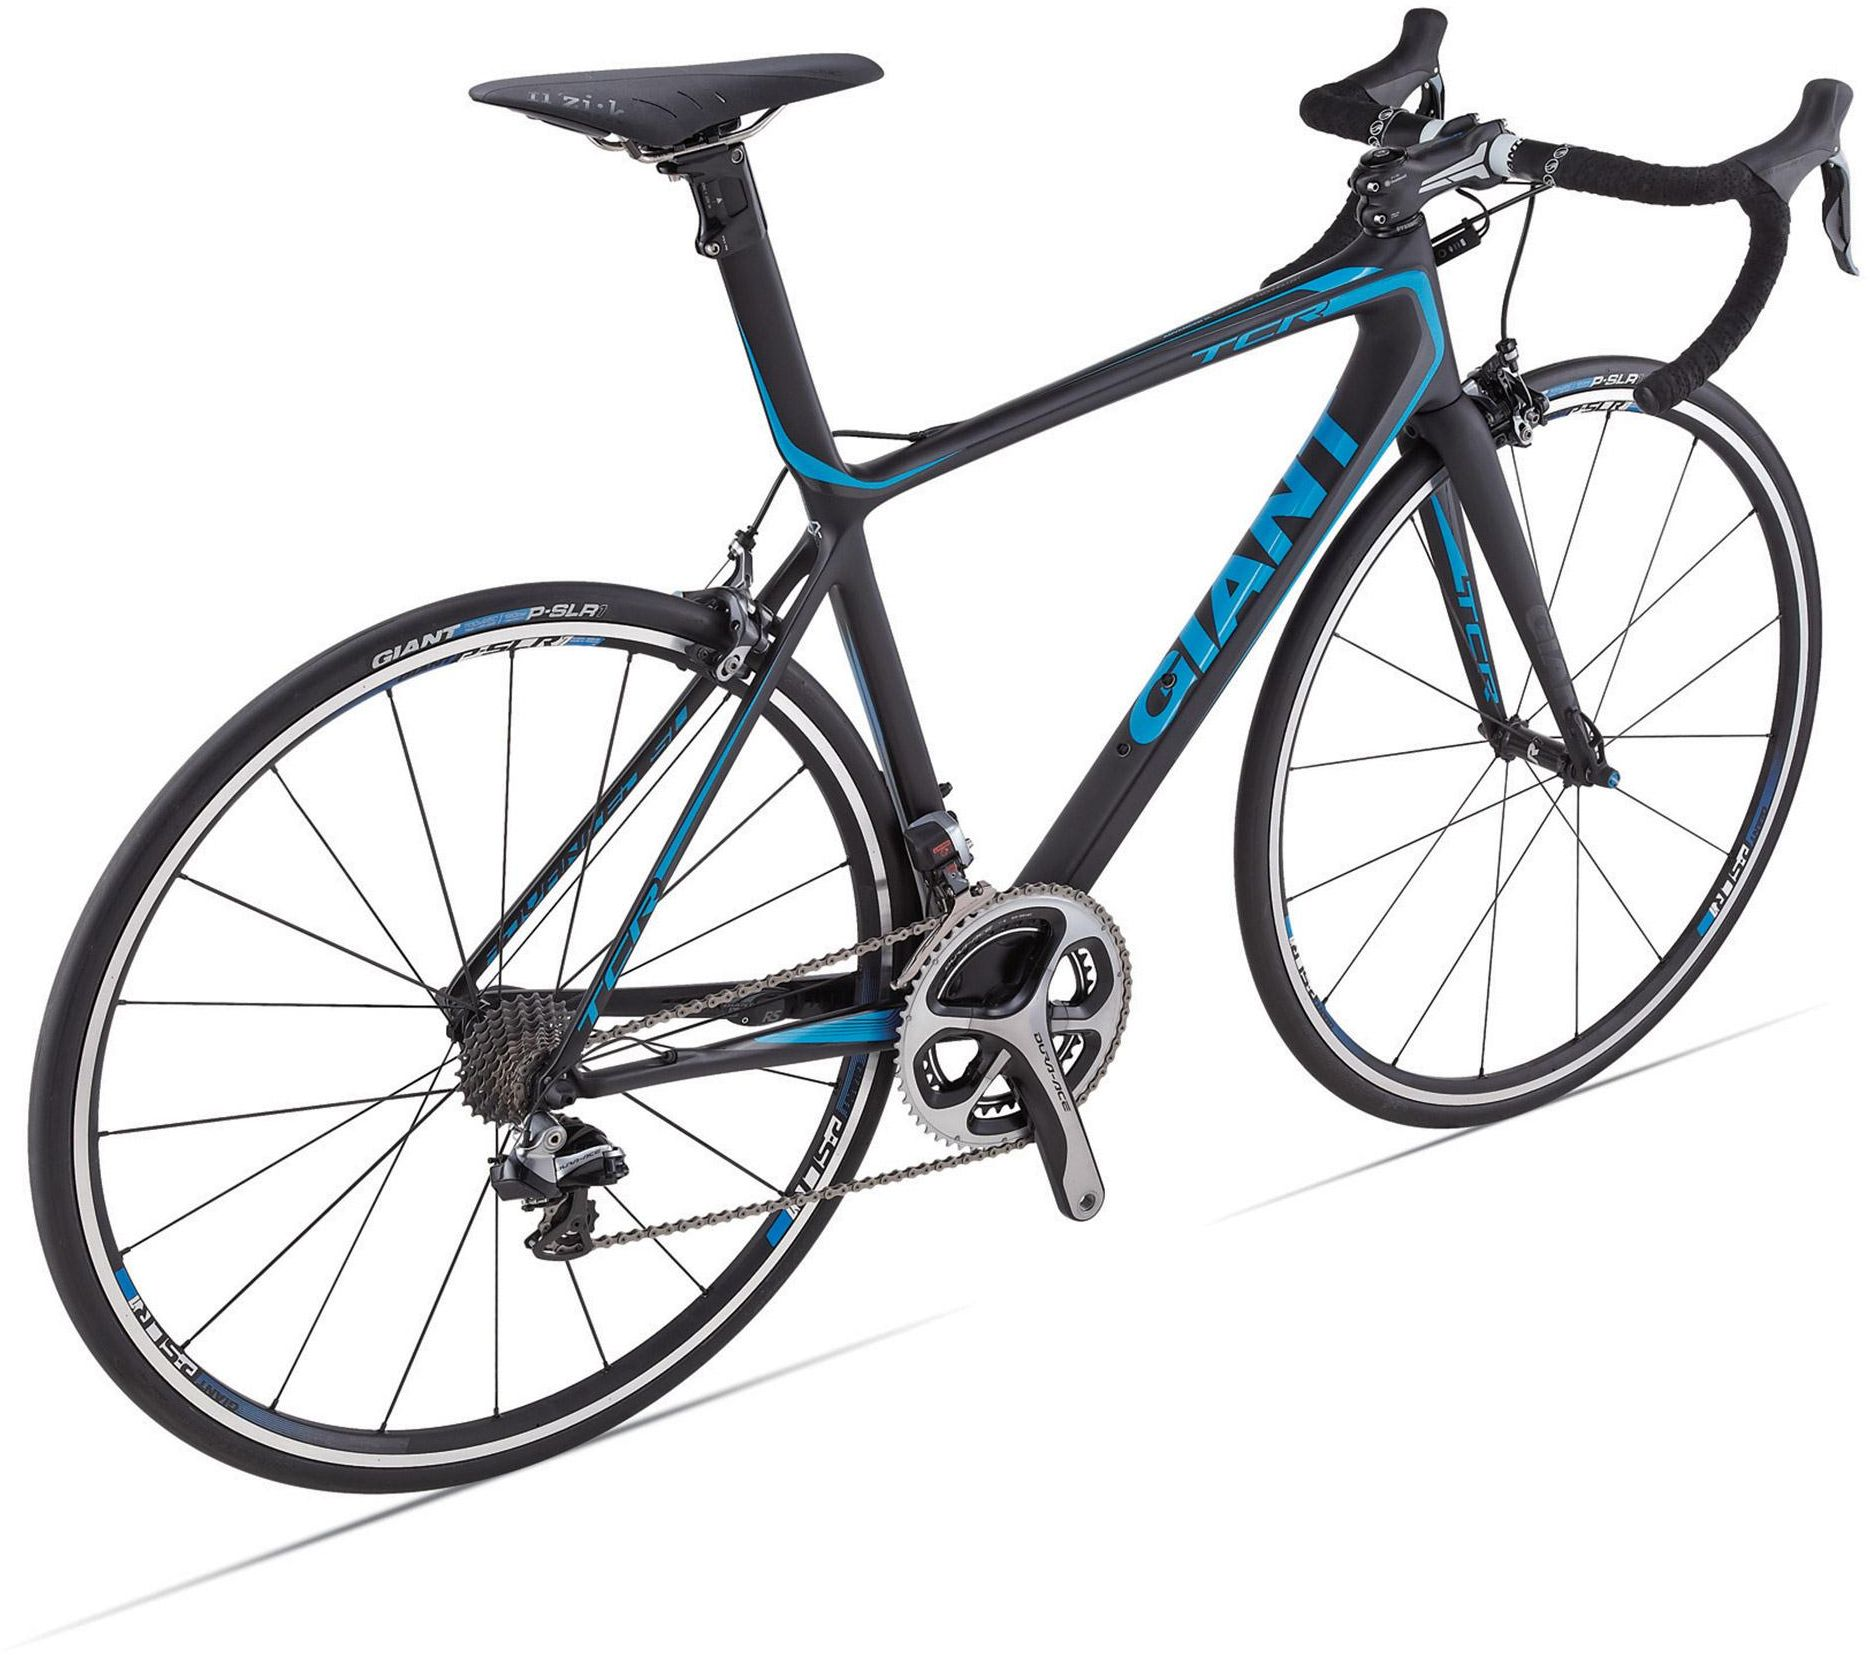 Giant TCR Advanced SL 0 2014 review - The Bike List